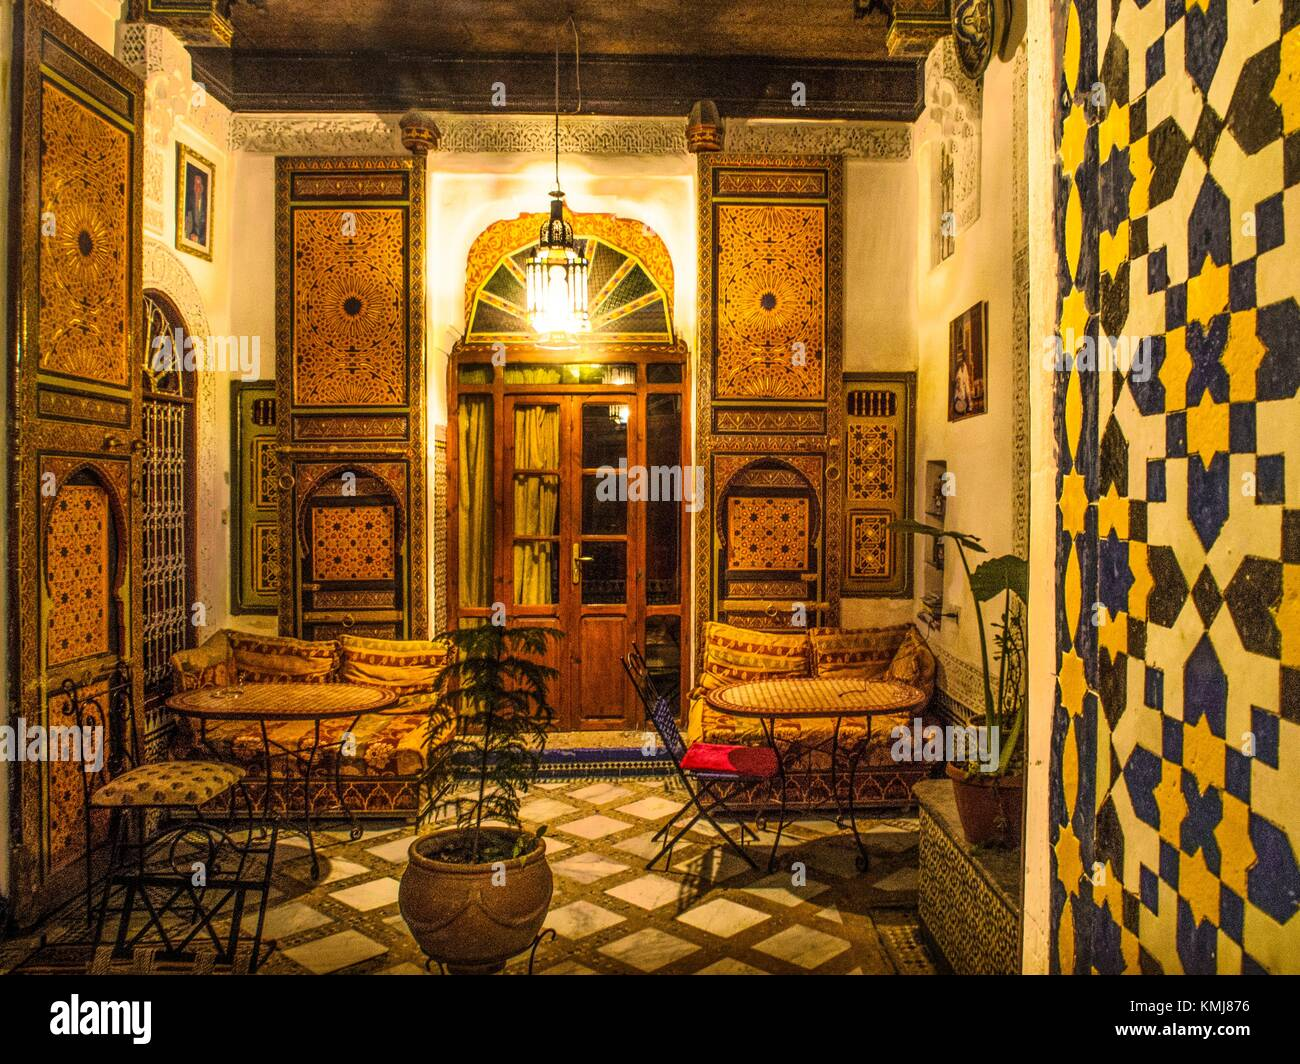 Morocco, Fes, Patio of the Riad Bou Iniana, in the ''Medina'' (old part) of Fes. - Stock Image